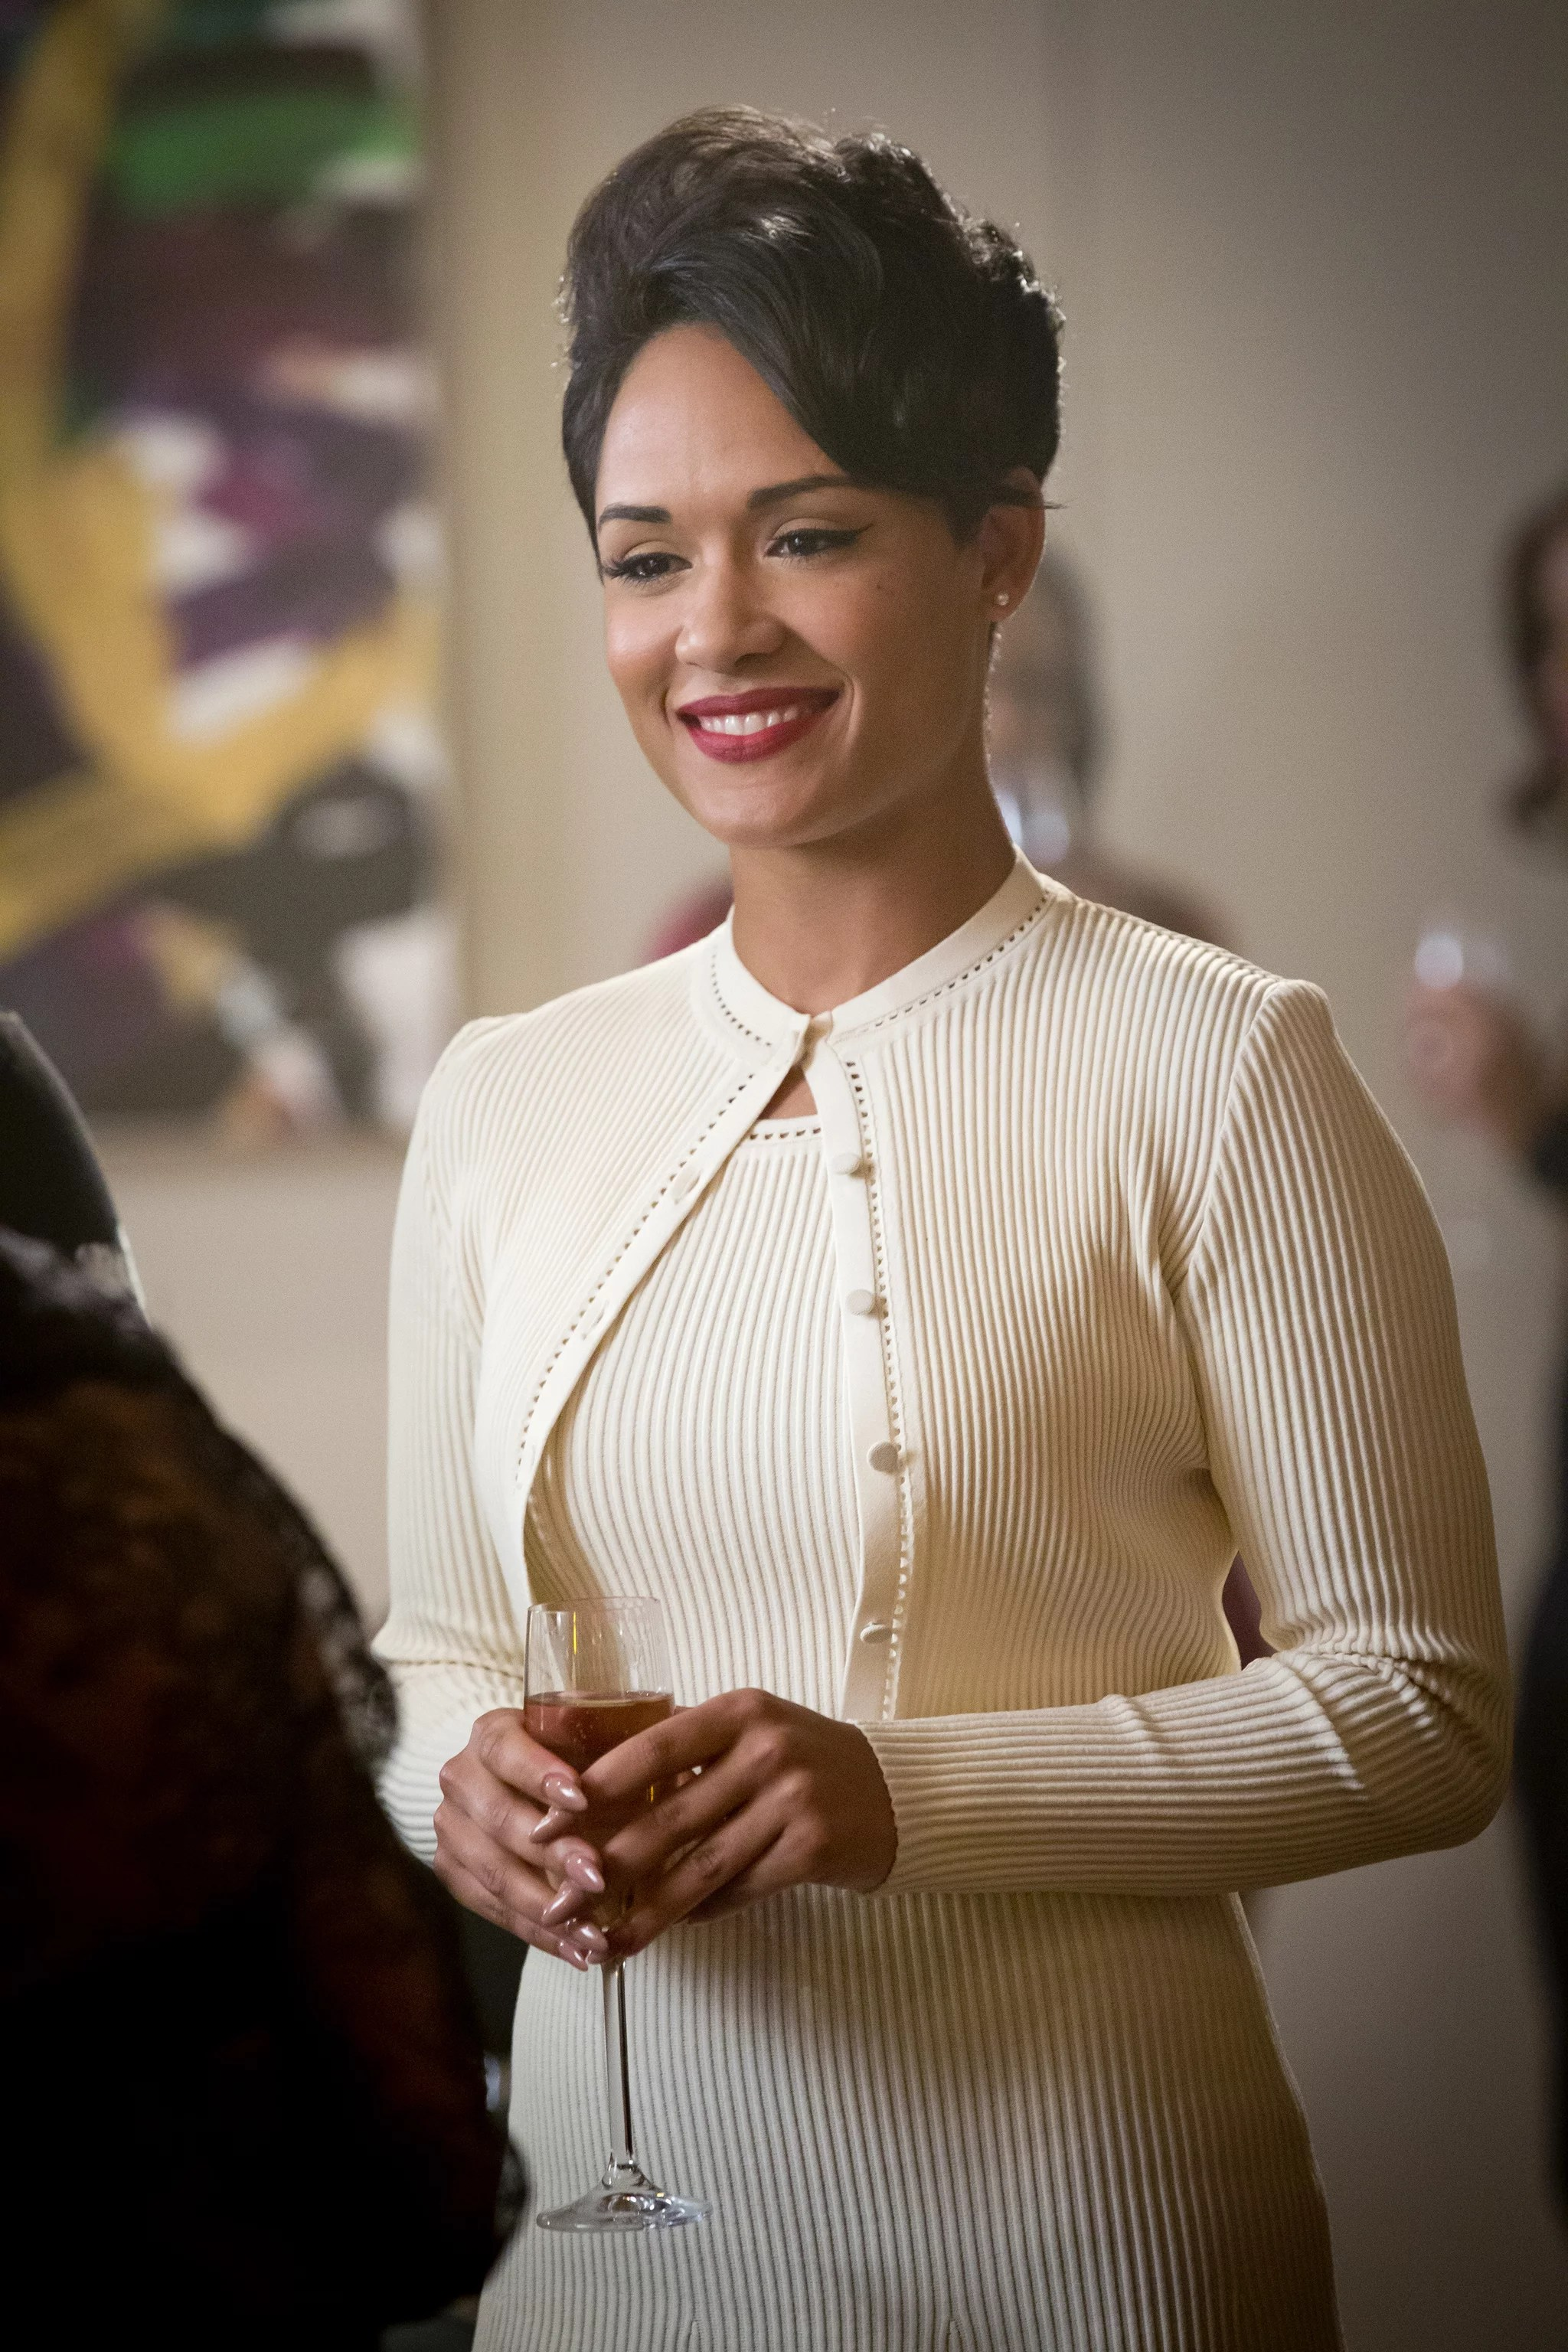 Boo Boo Kitty Meaning : kitty, meaning, Kitty, Mean,, Anika, (Grace, Gealey), Still, Empire, Season, Premiere, Pictures:, Cookie, Ready, POPSUGAR, Entertainment, Photo